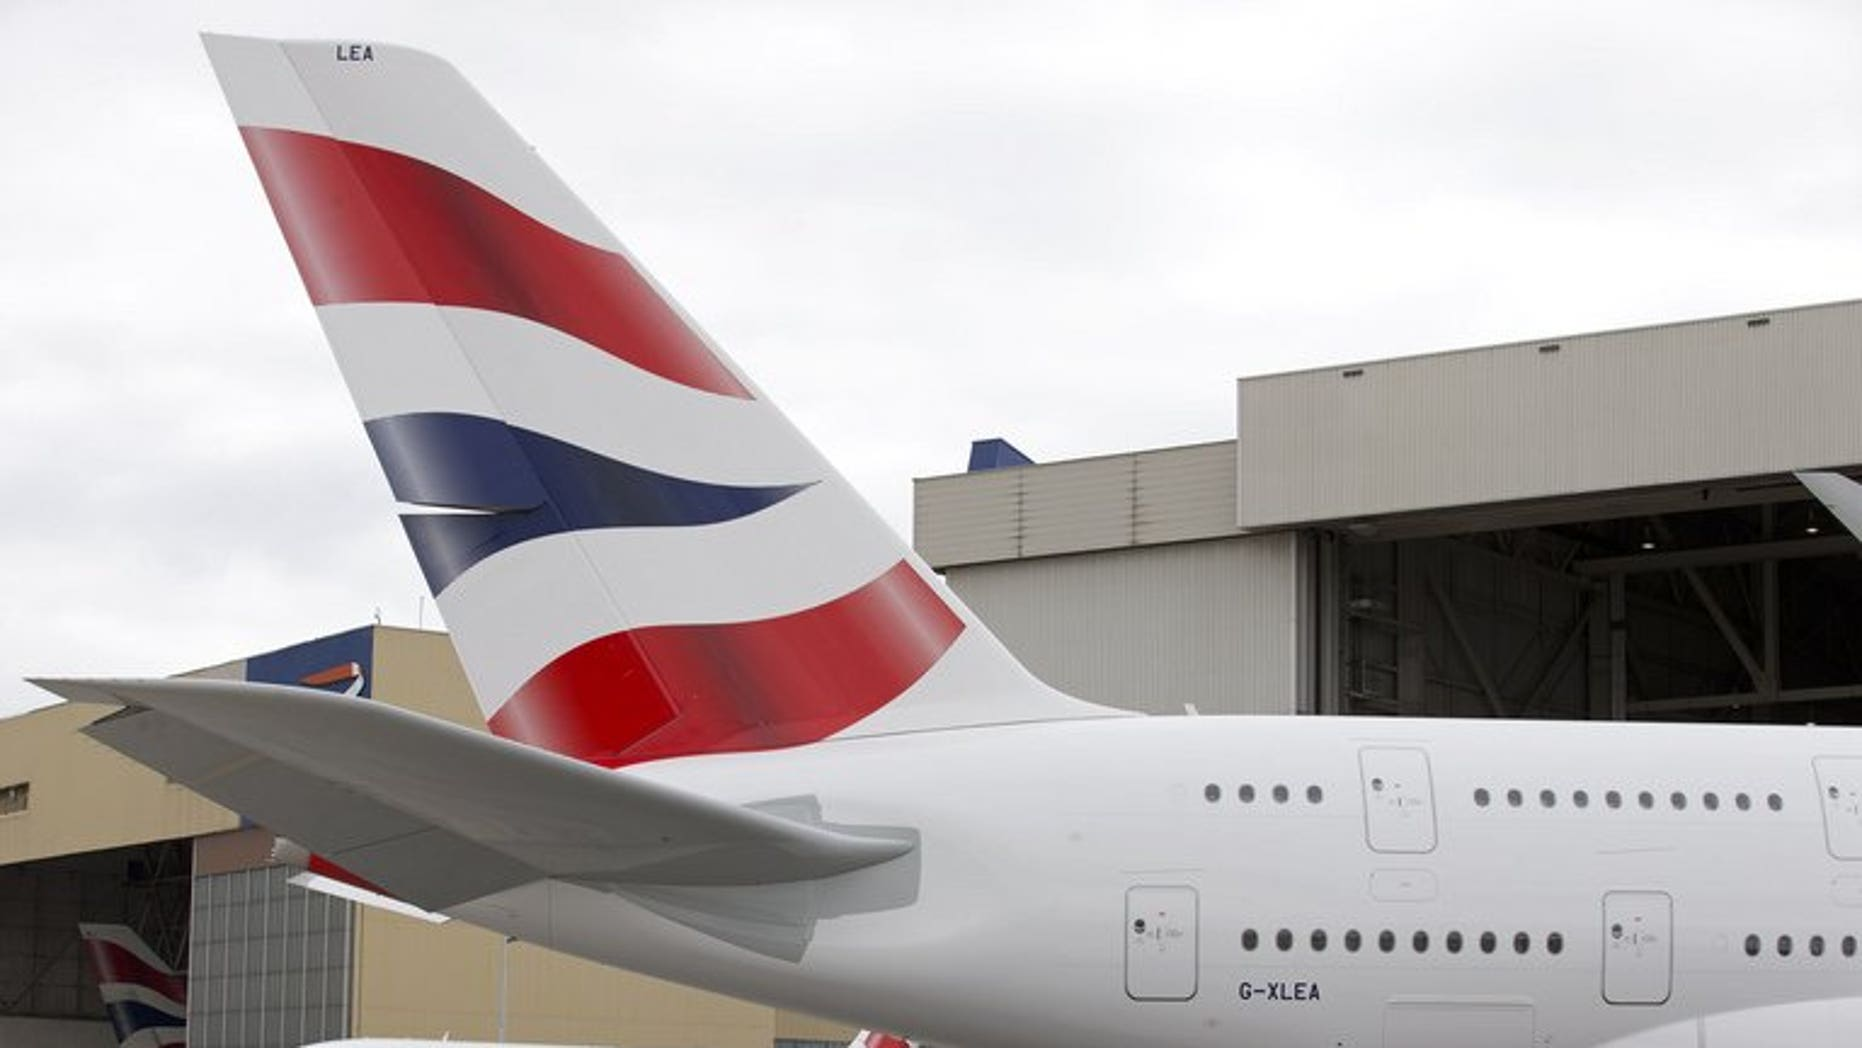 The tail of a British Airways Airbus A380 at Heathrow Airport in London on July 4. International Airlines Group, parent of British Airways, announced on Friday a return to profit in the second quarter despite the heavy financial burden of restructuring its struggling Spanish unit Iberia.